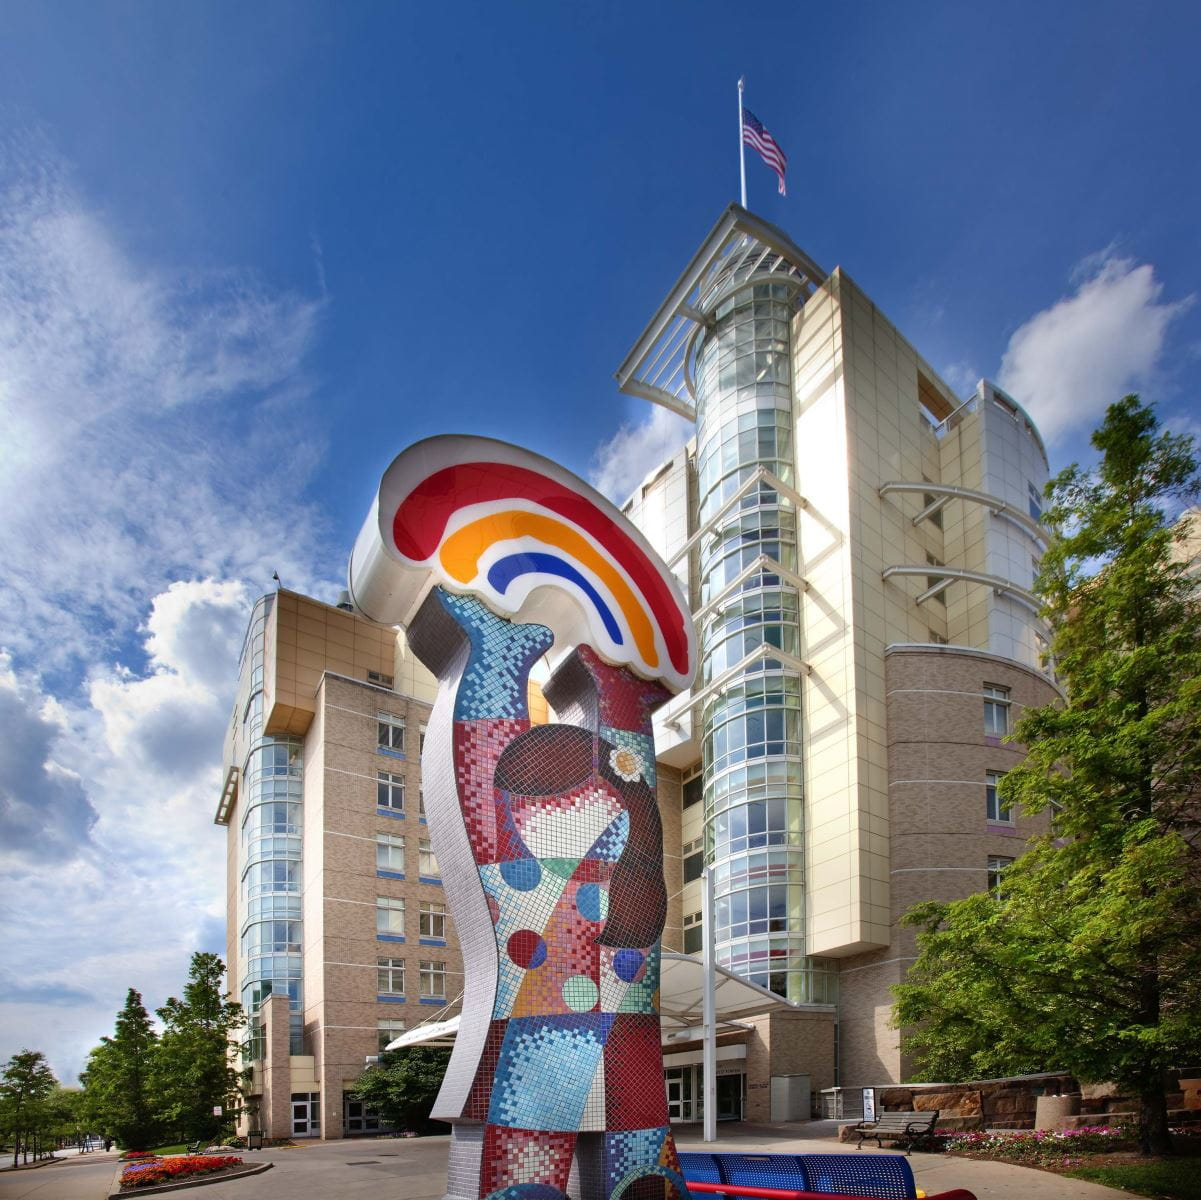 Outside the present-day University Hospitals Rainbow Babies & Children's Hospital